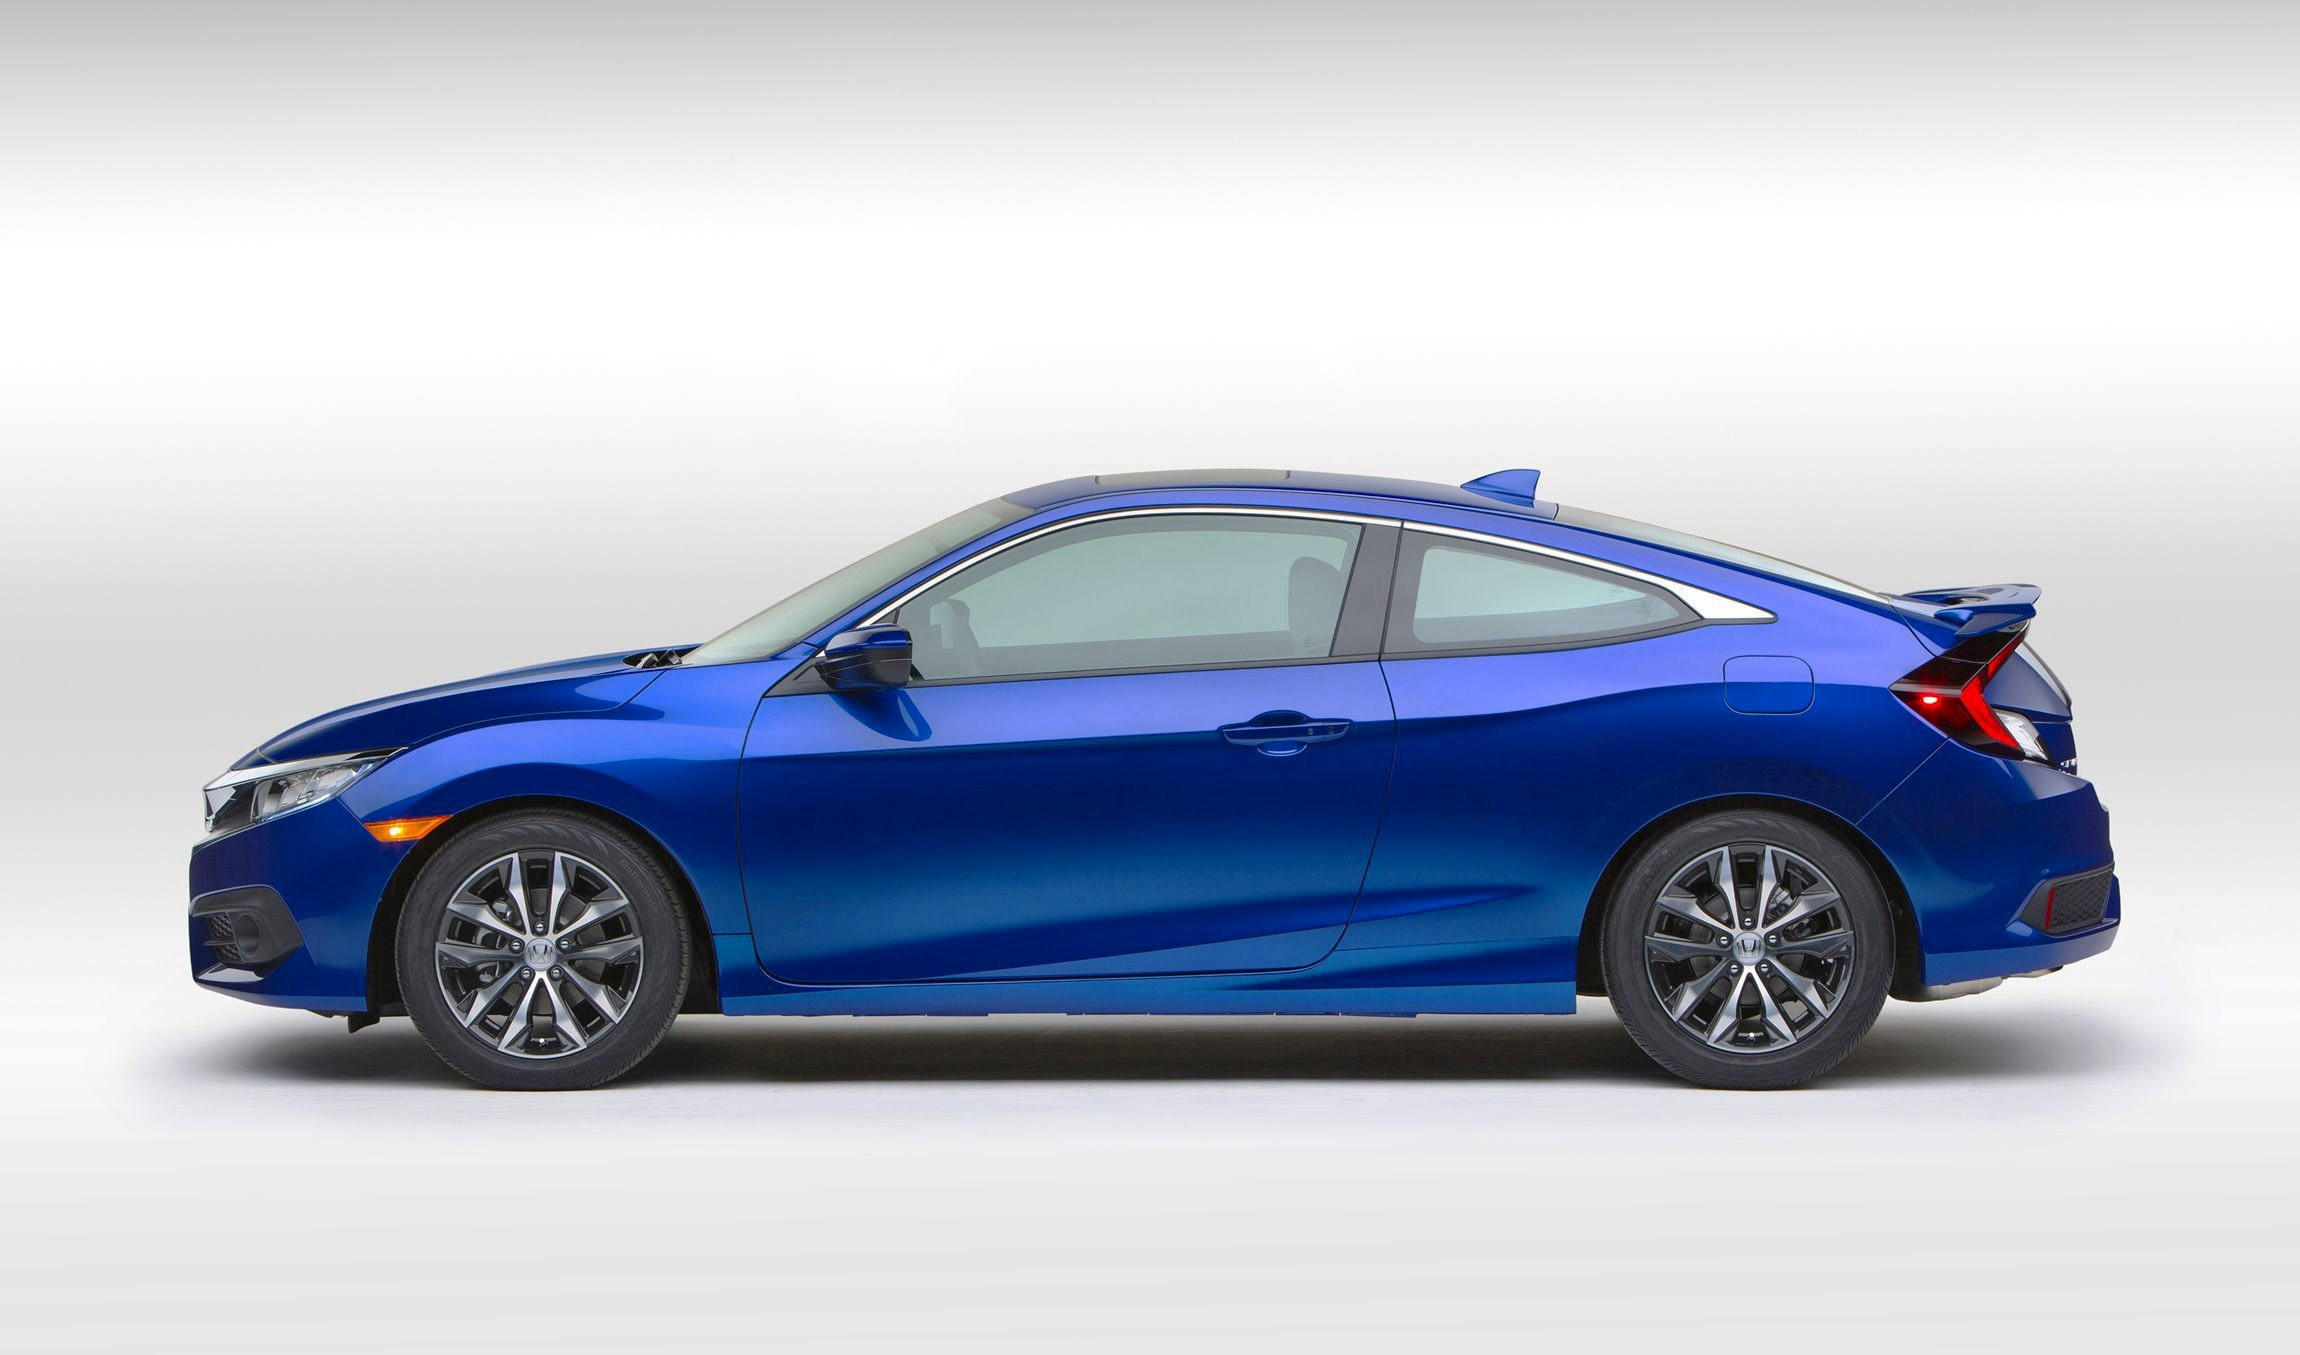 2015 Honda Civic Si Turbo >> 2016 Honda CIVIC Coupe Reveal - Big Style, Power from ...